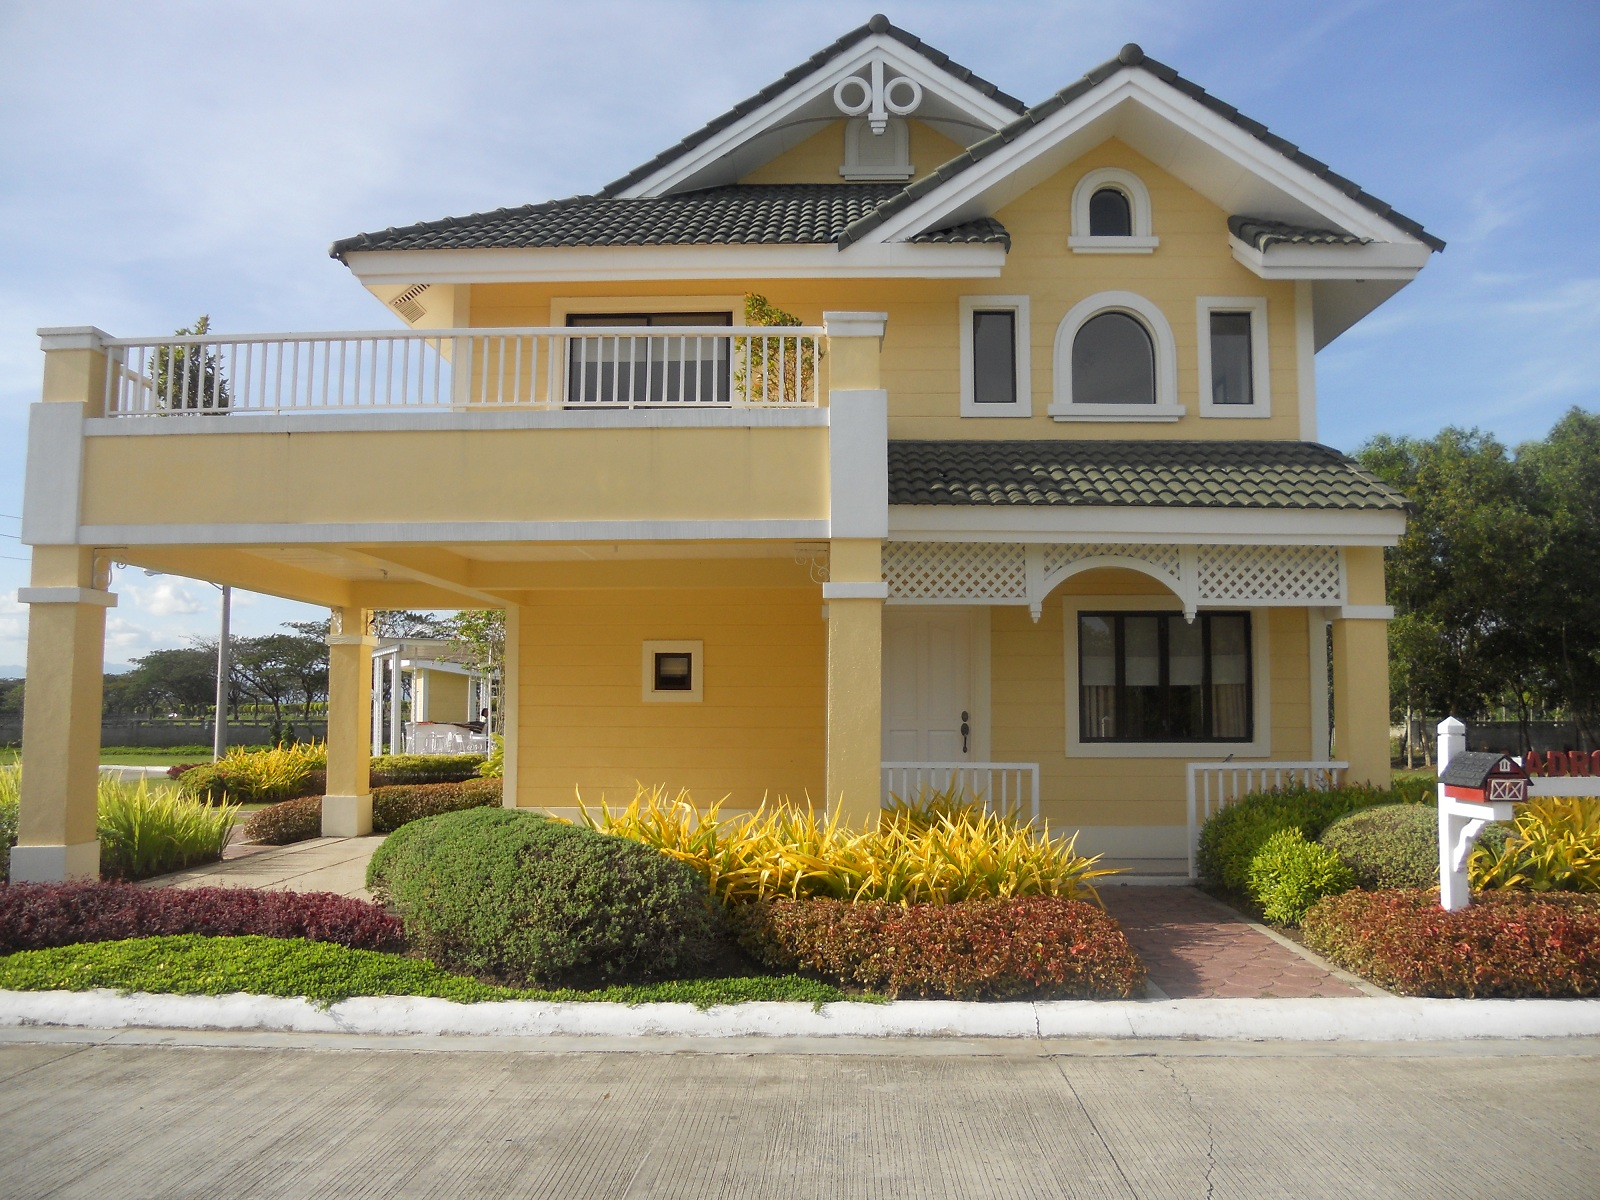 Lladro model house of savannah crest iloilo by camella for Model house bungalow type